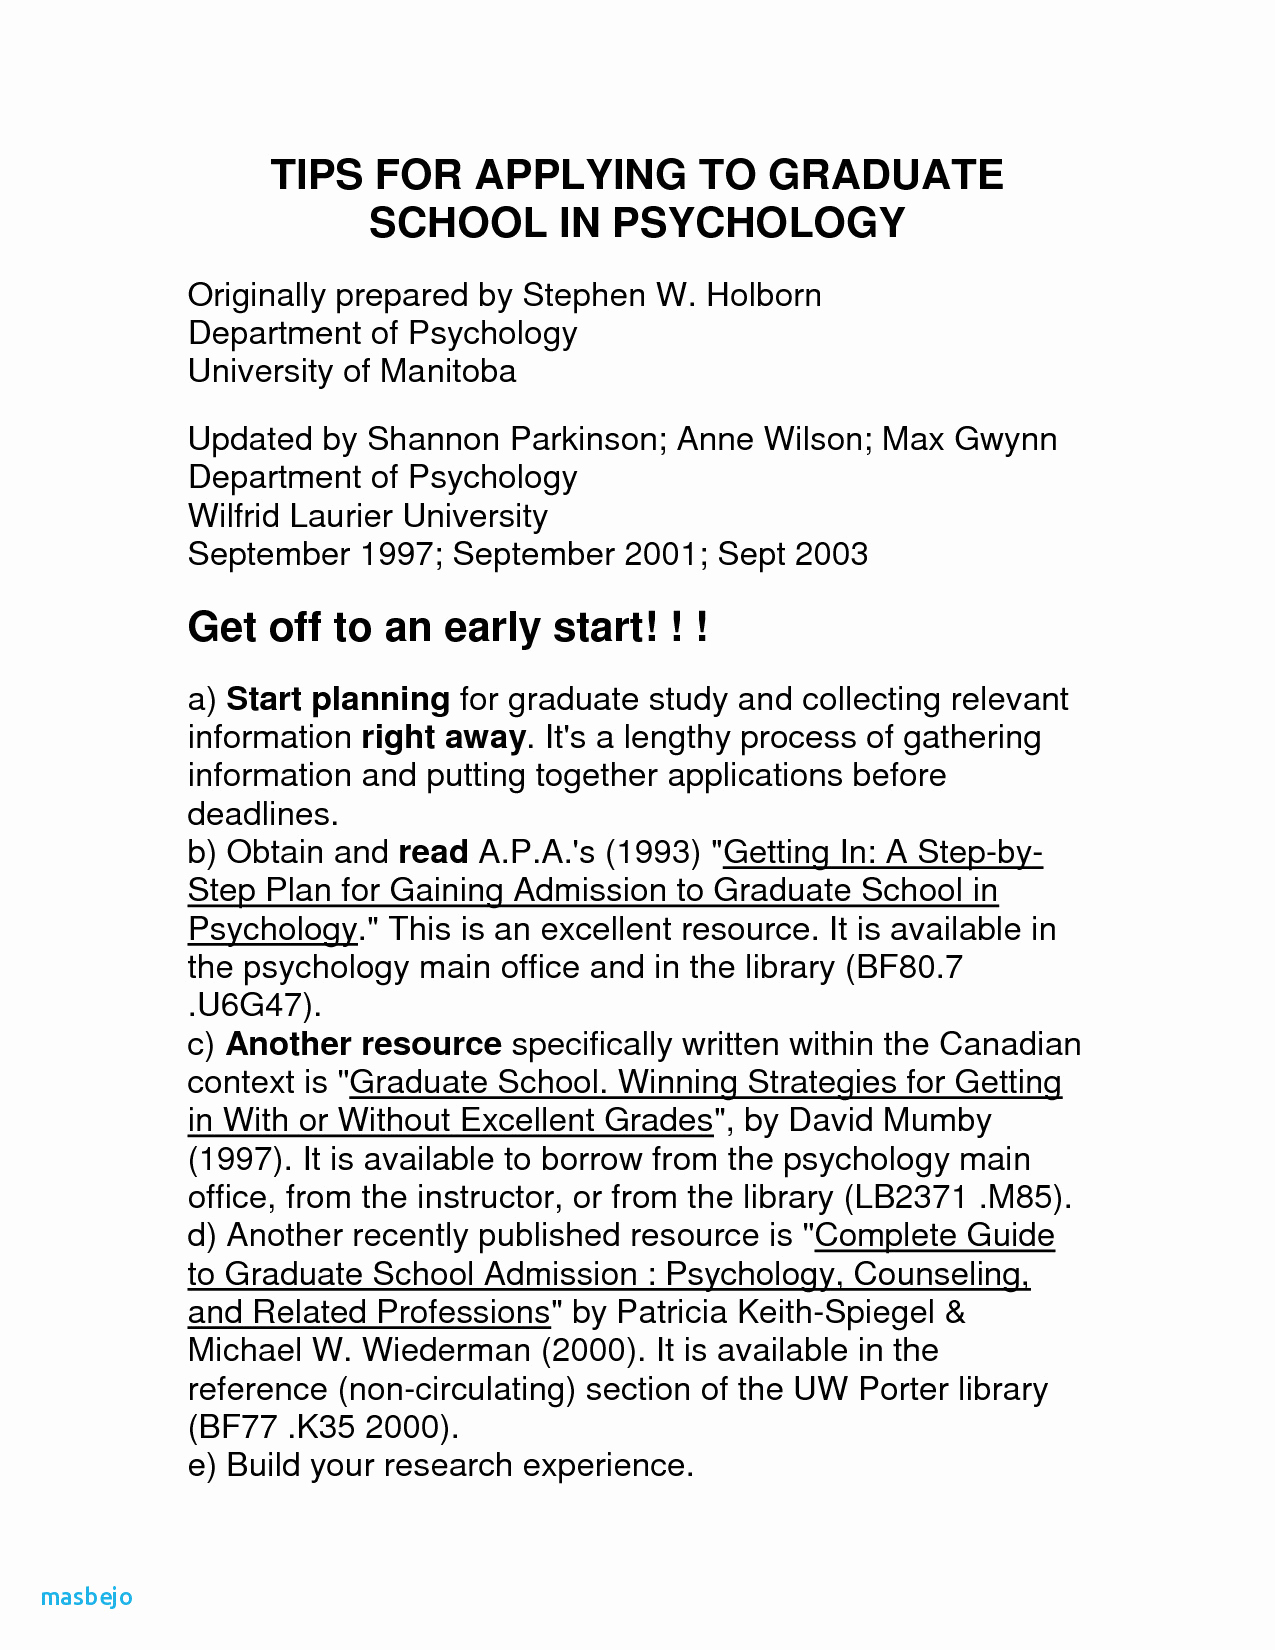 Psychology Resumes - Resumes for Psychology Majors Resume formats In Word New Keywords